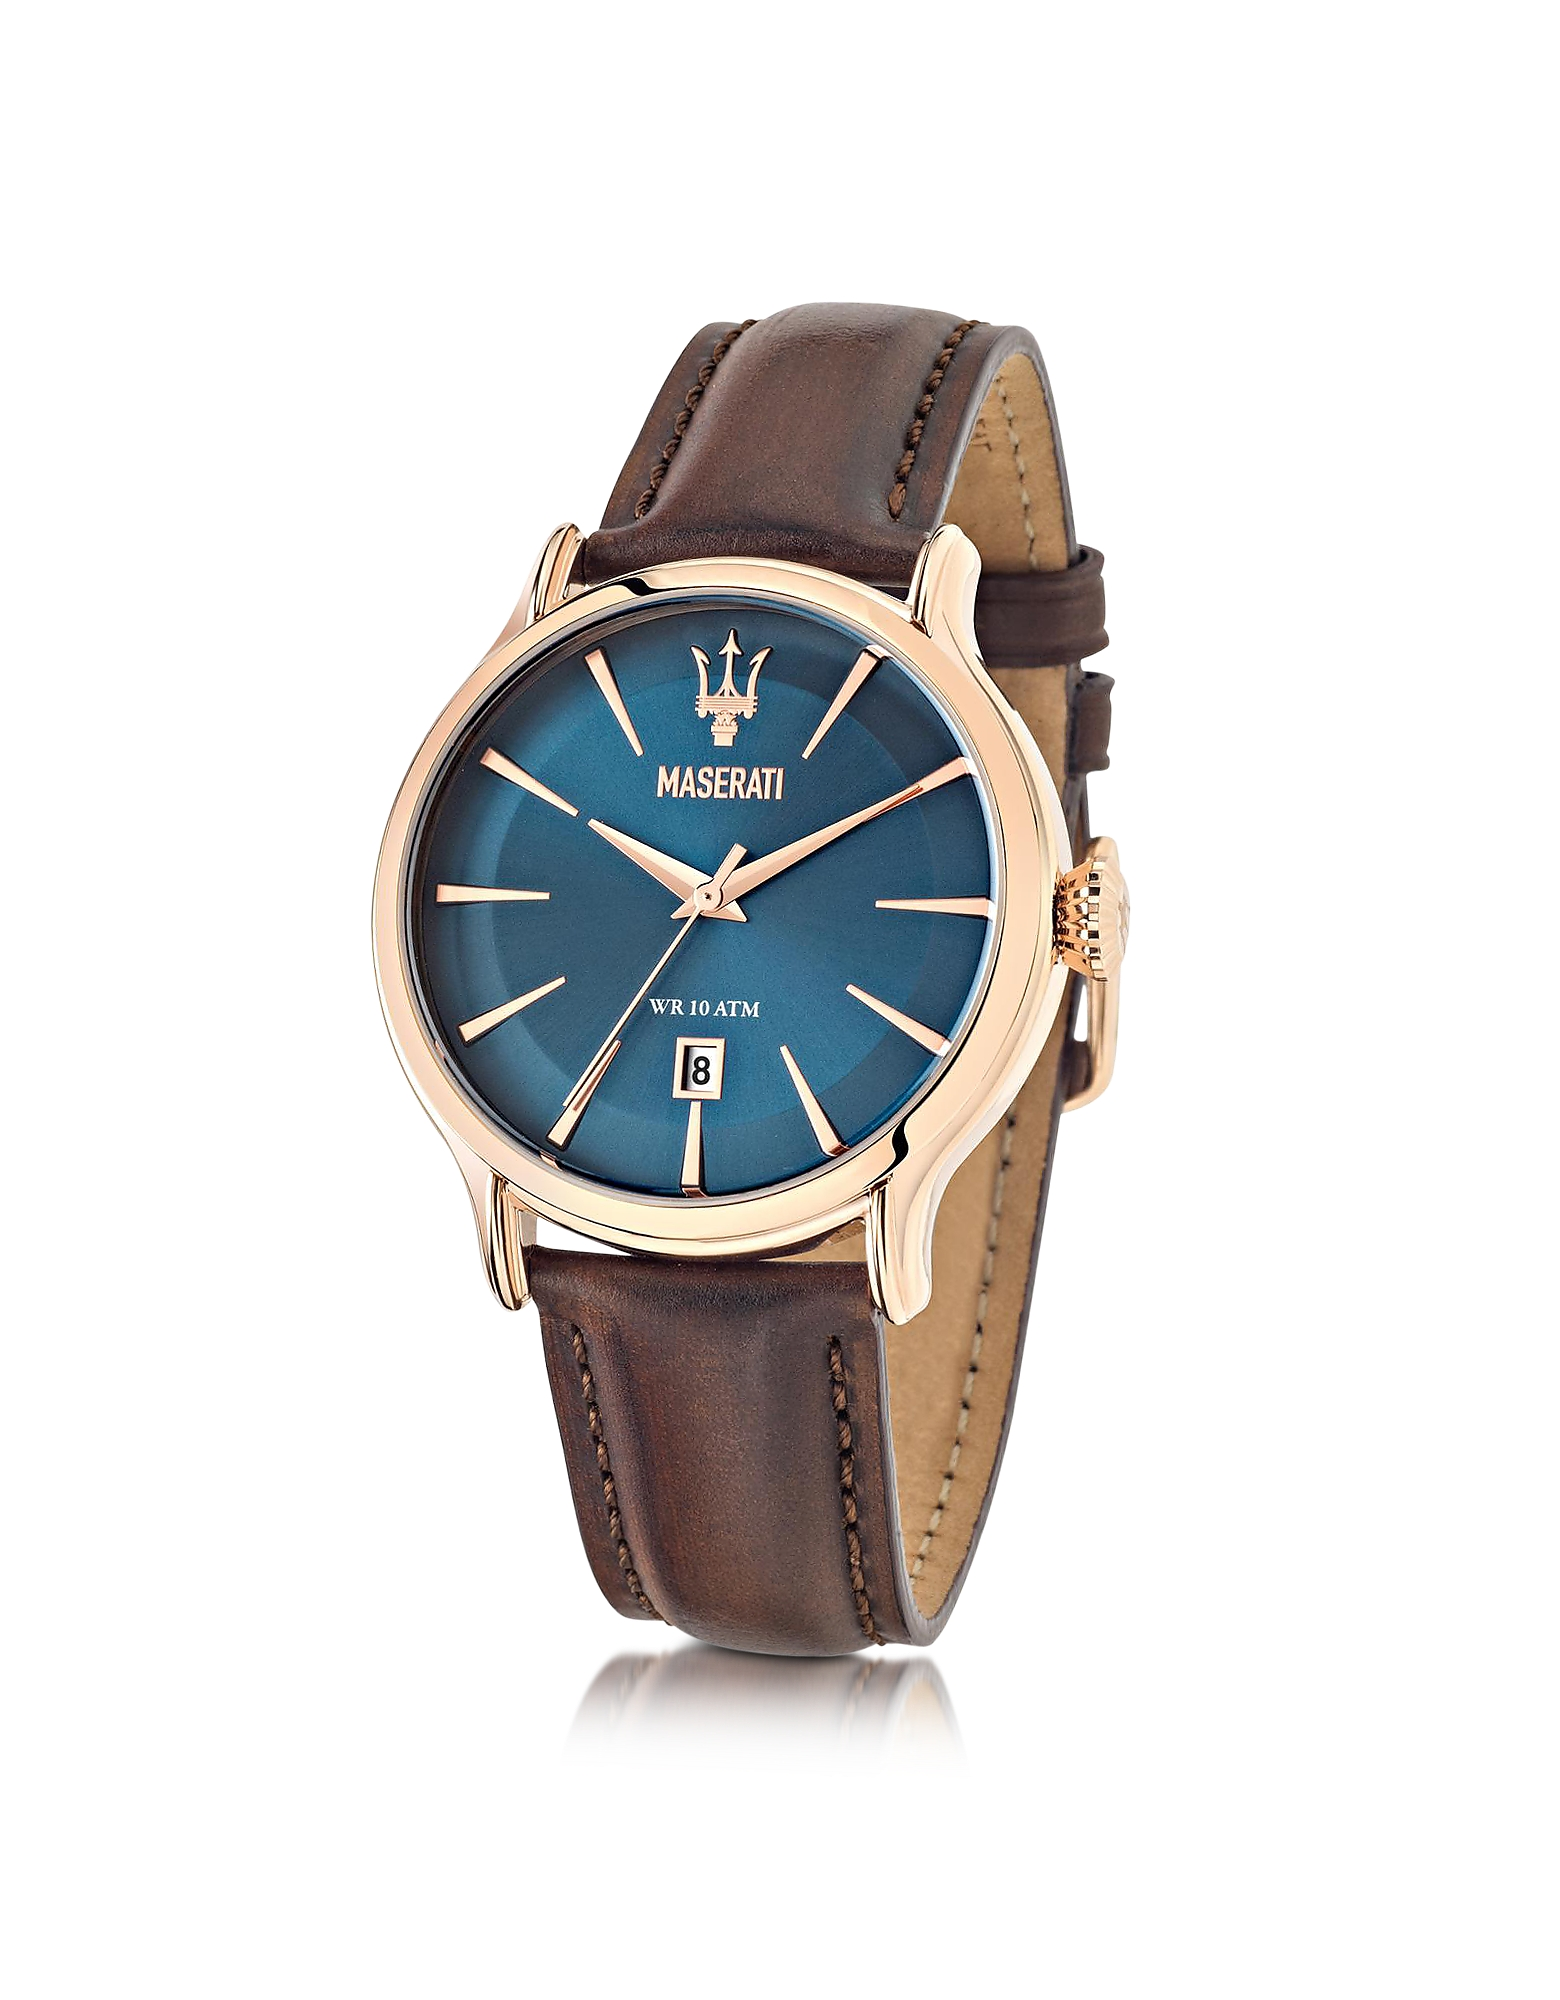 Maserati Men's Watches, Epoca Blue Dial and Brown Leather Strap Men's Watch